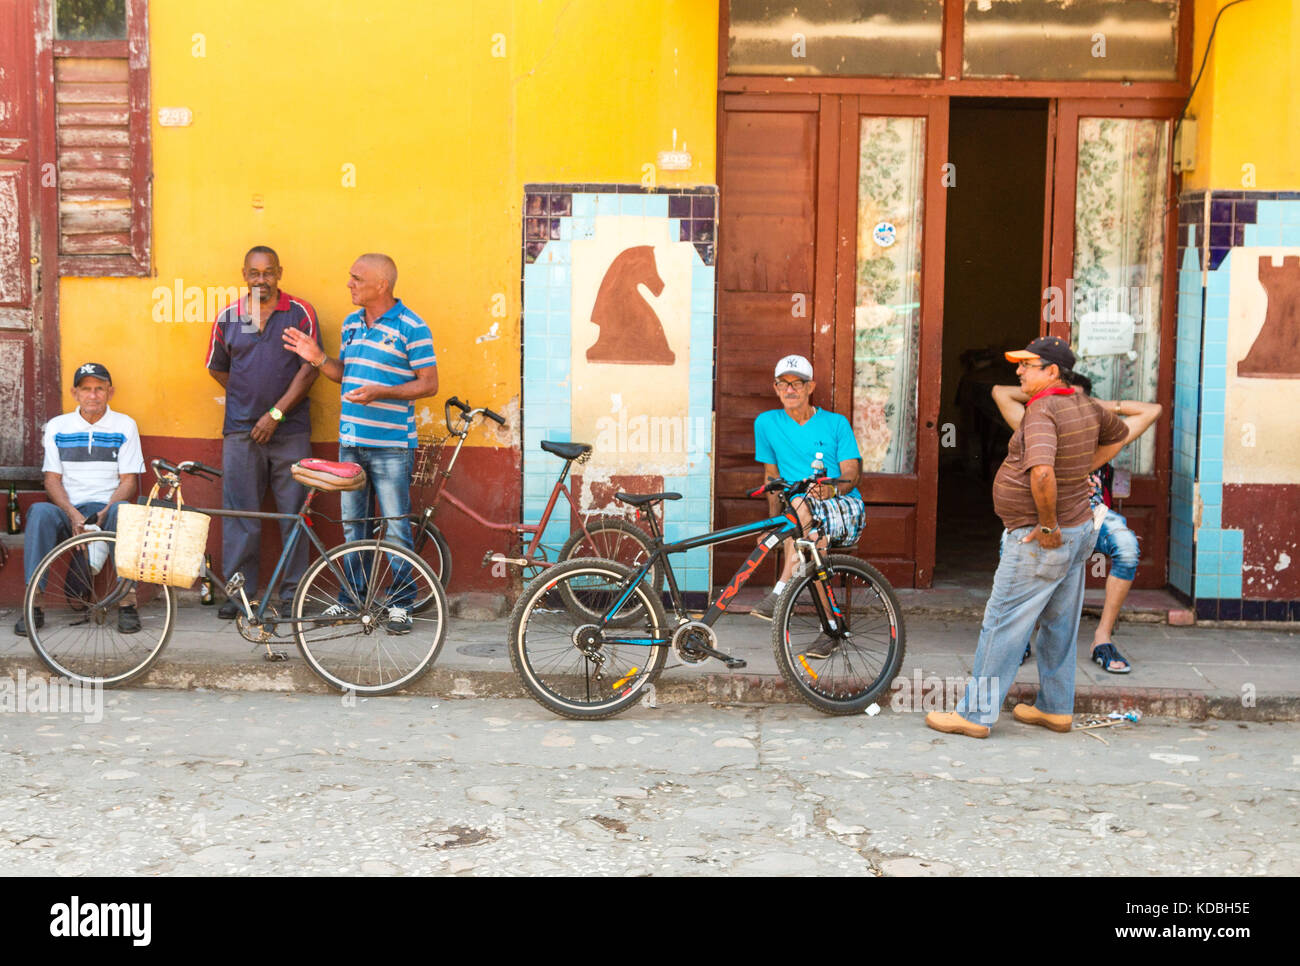 Spanish Colonial architecture with colourful houses,  cobblestone streets and people in a street scene, Trinidad, - Stock Image